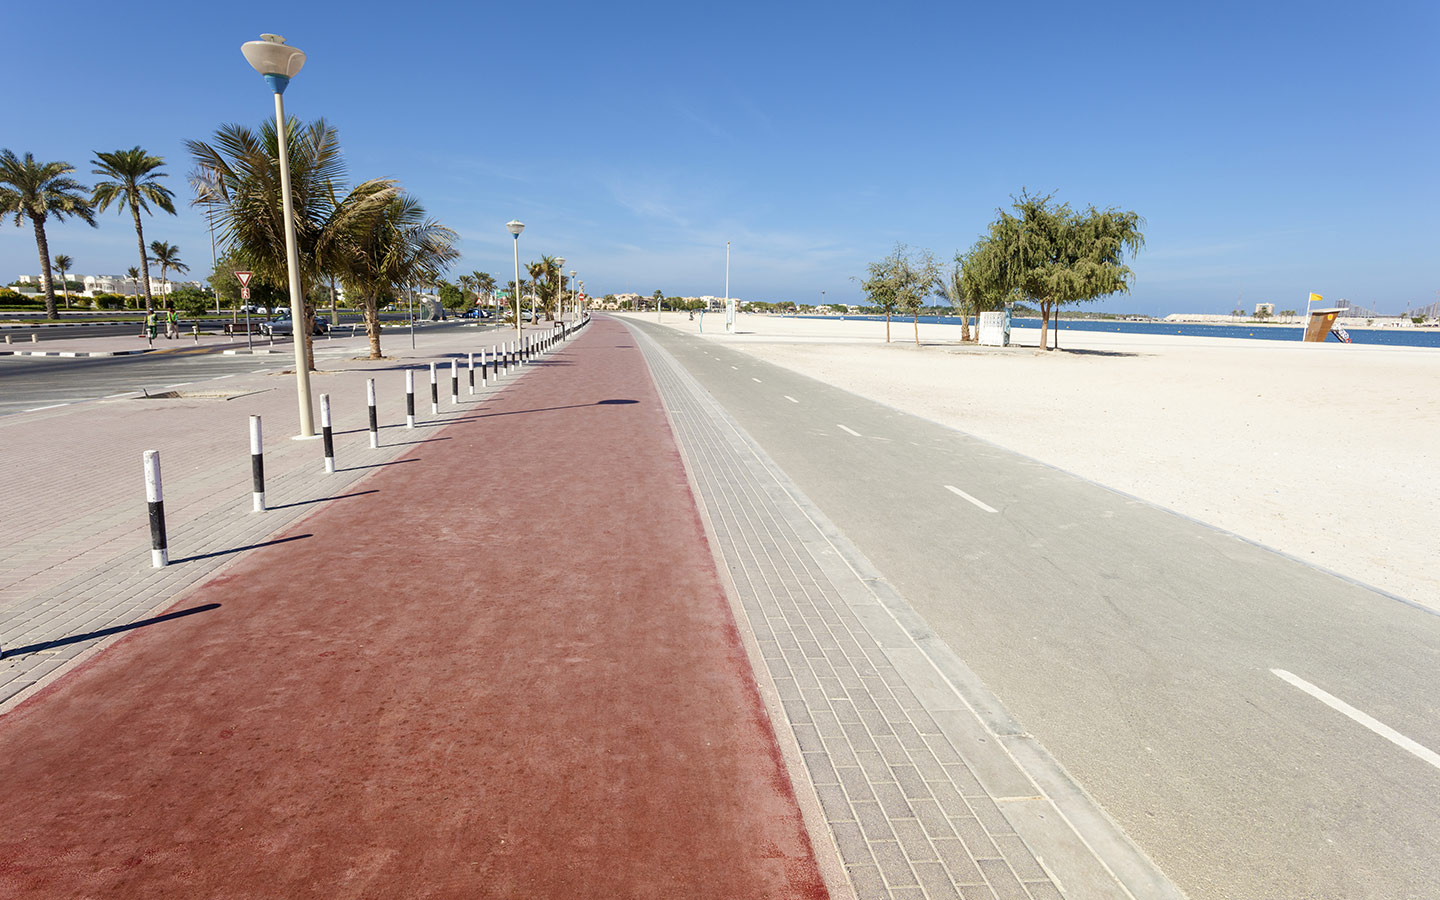 A quite beach running track to stay fit in Dubai